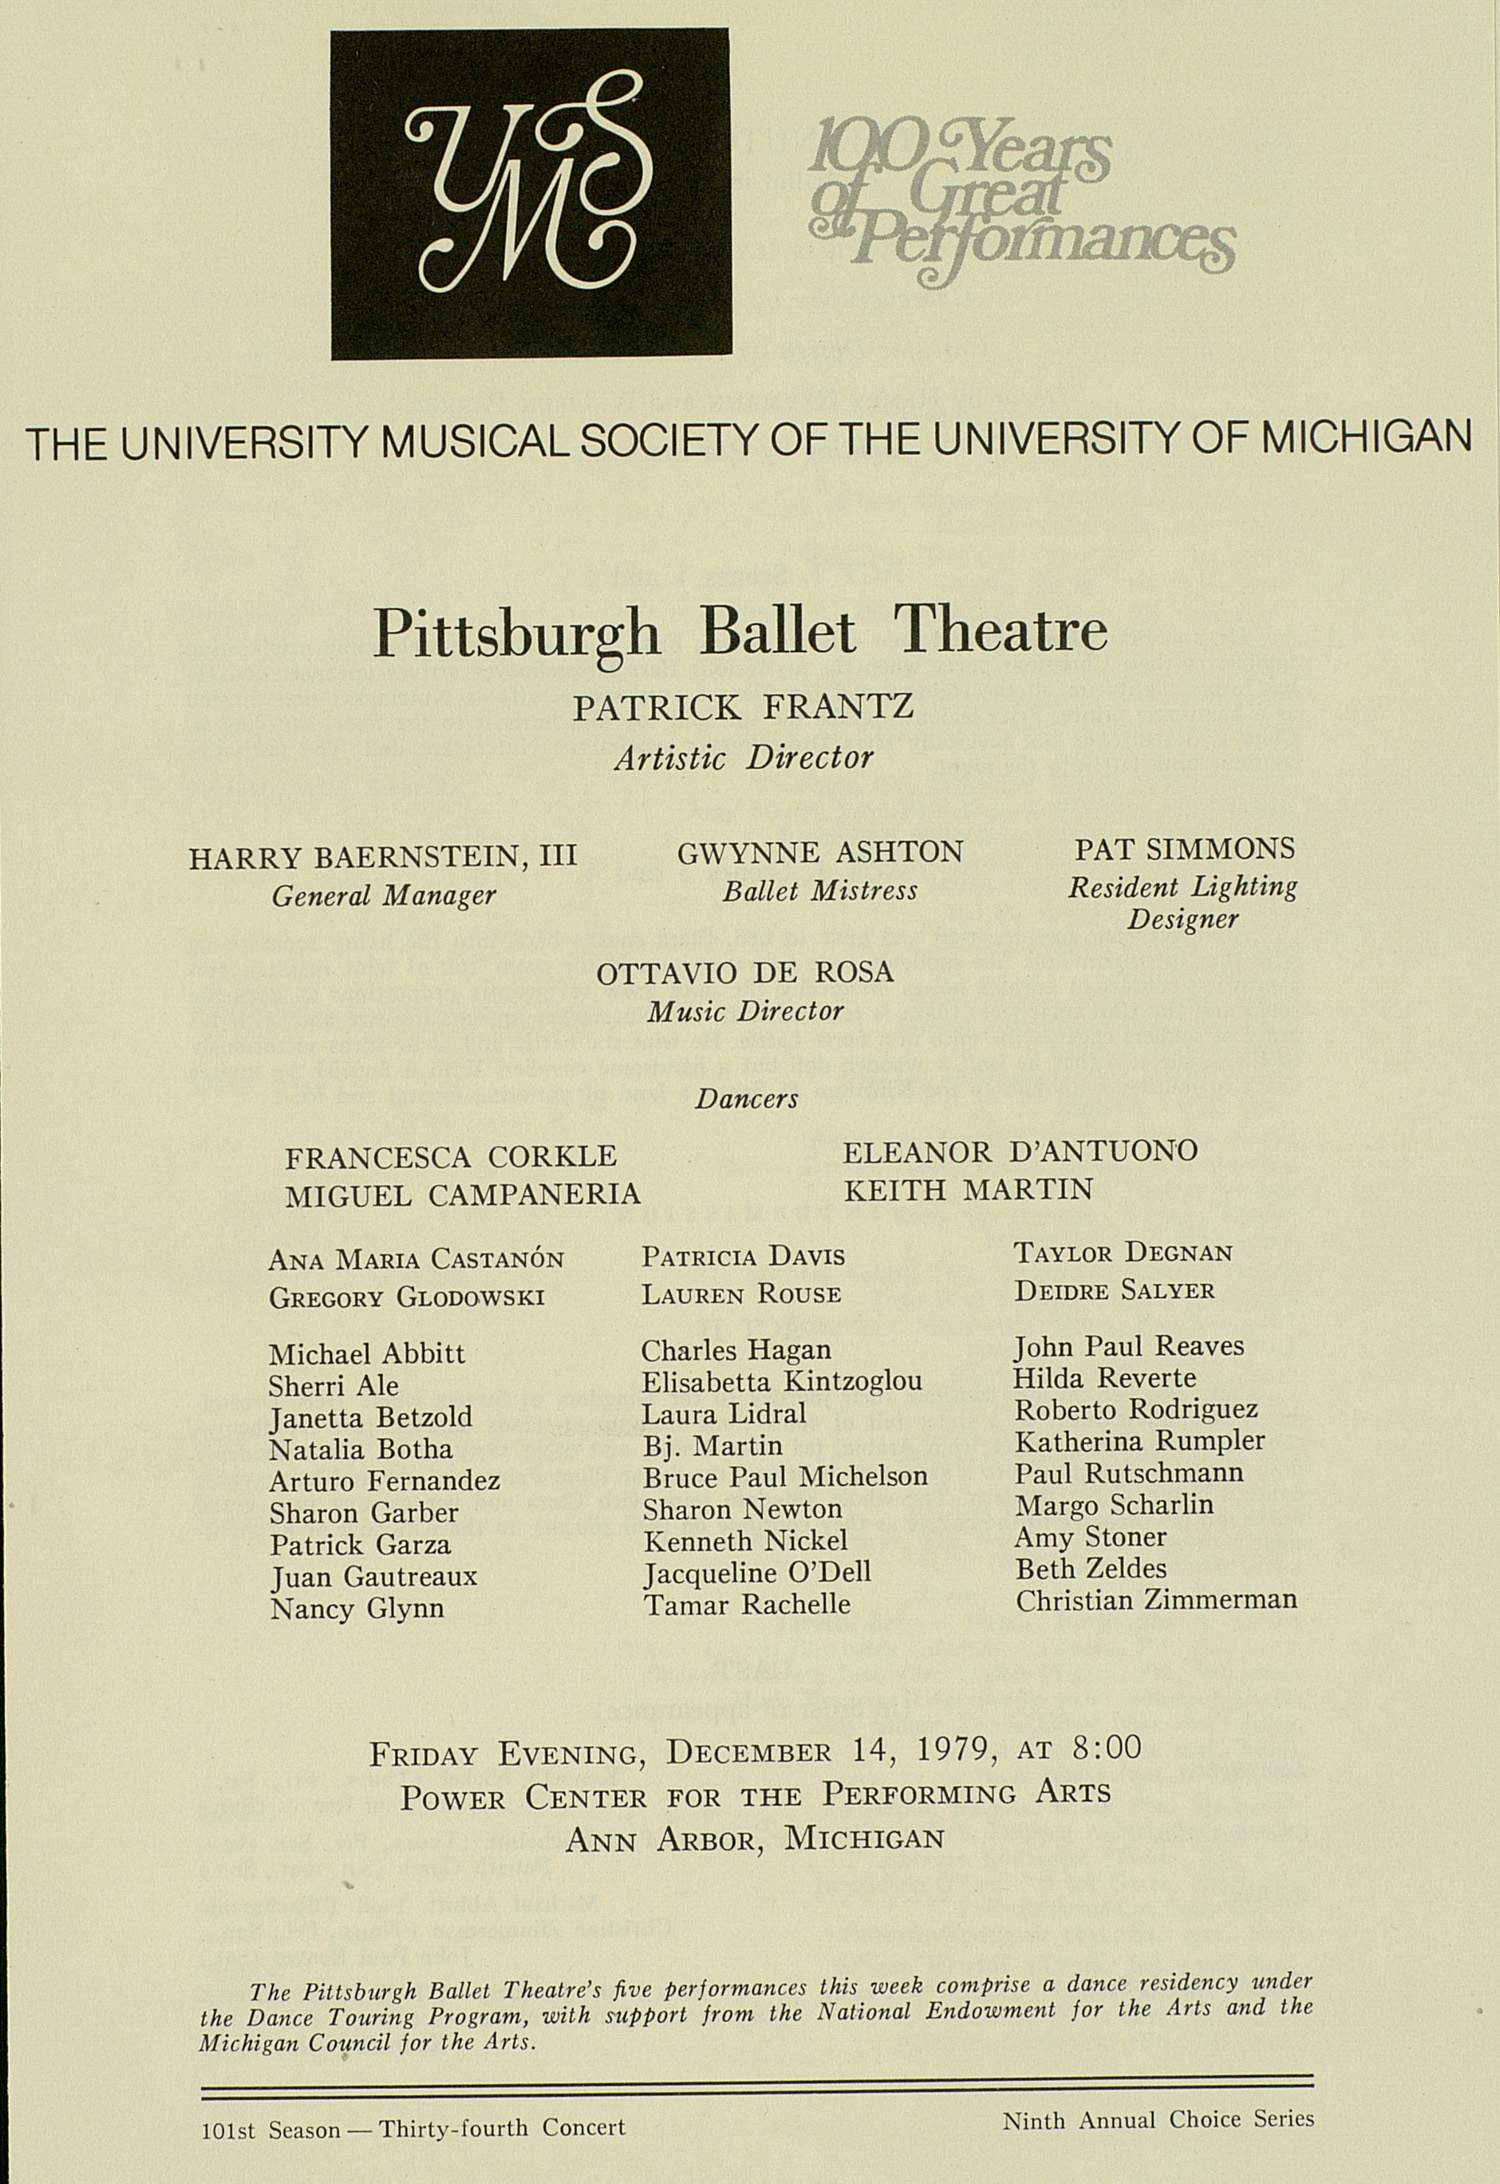 UMS Concert Program, December 14, 1979: 100 Years Of Great Performances -- Pittsburgh Ballet Theatre image